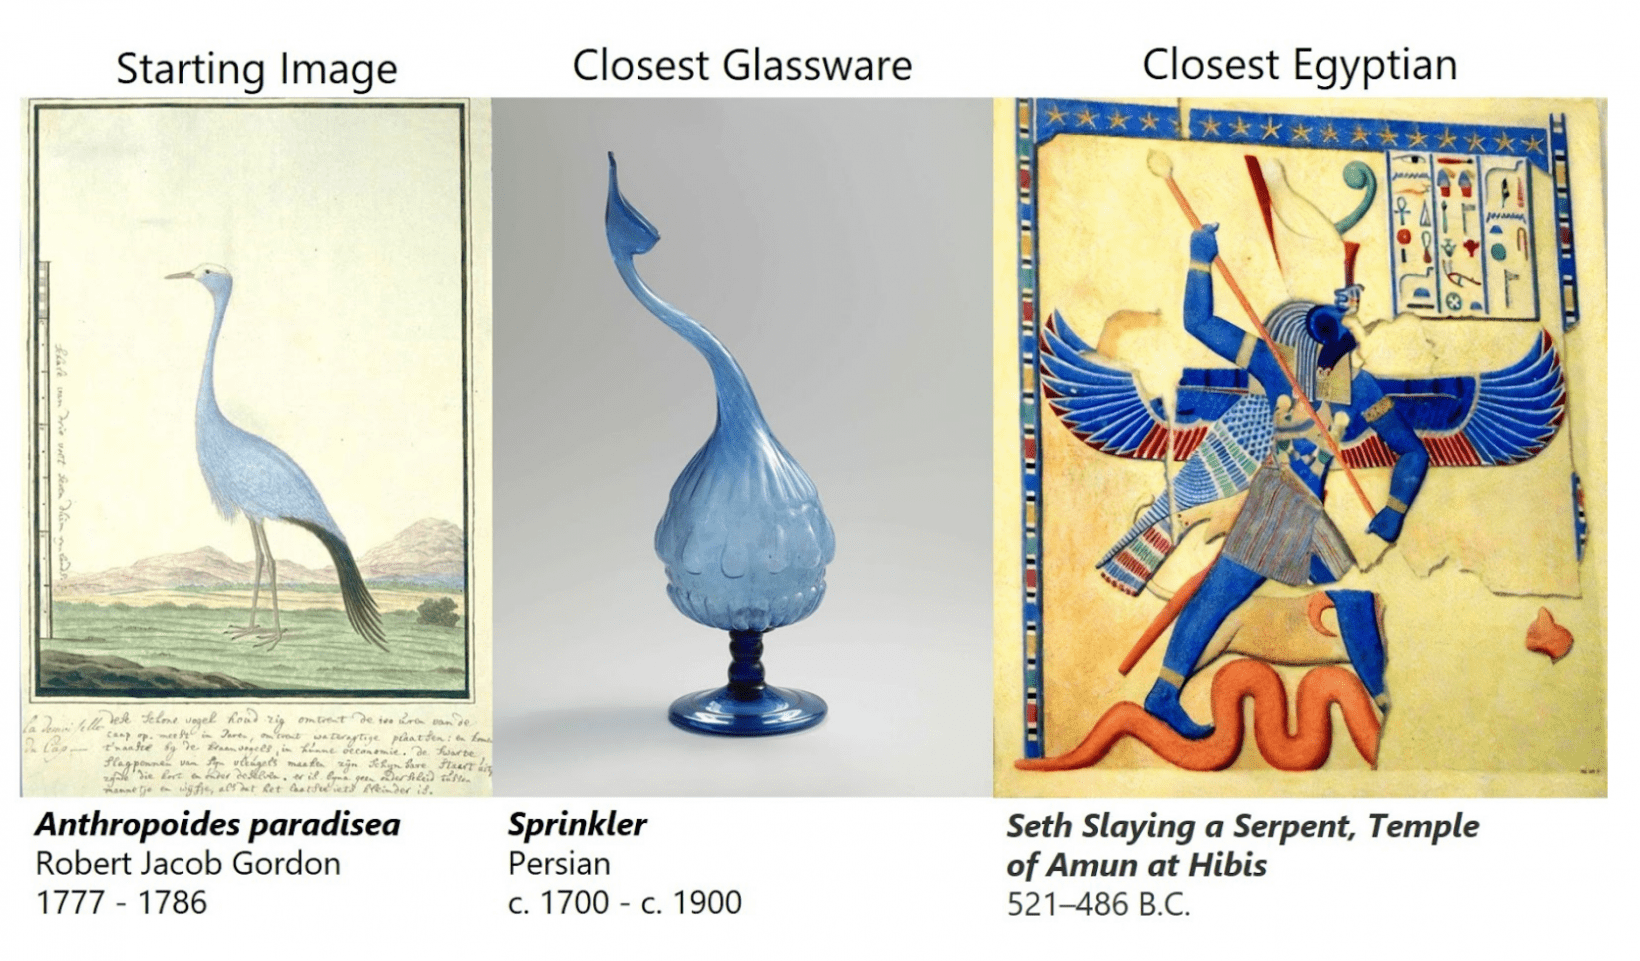 """Glassware Egyptian: """"Anthropoides paradisea"""" and """"Seth Slaying a Serpent, Temple of Amun at Hibis"""" demonstrate a shared artistic form in color and theme."""